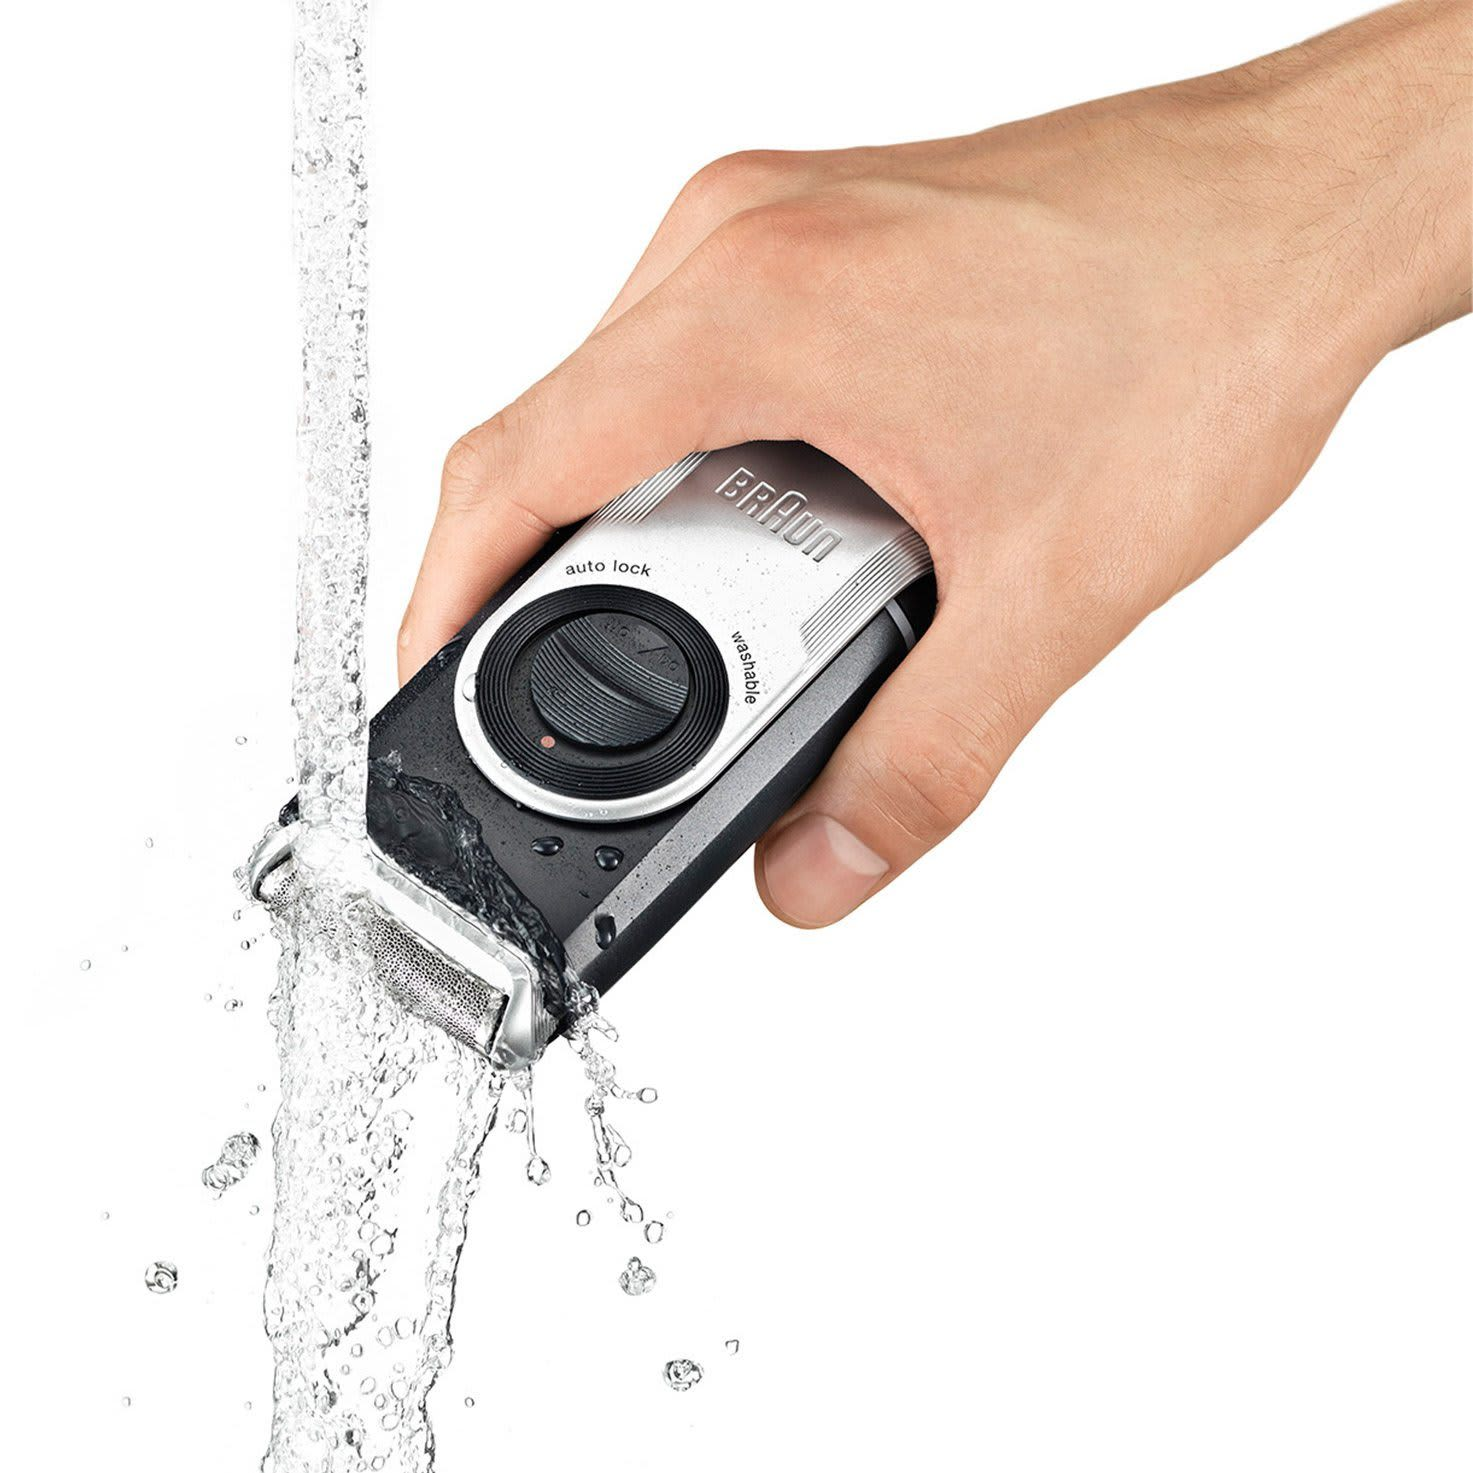 Braun MobileShave M-90 - in hand